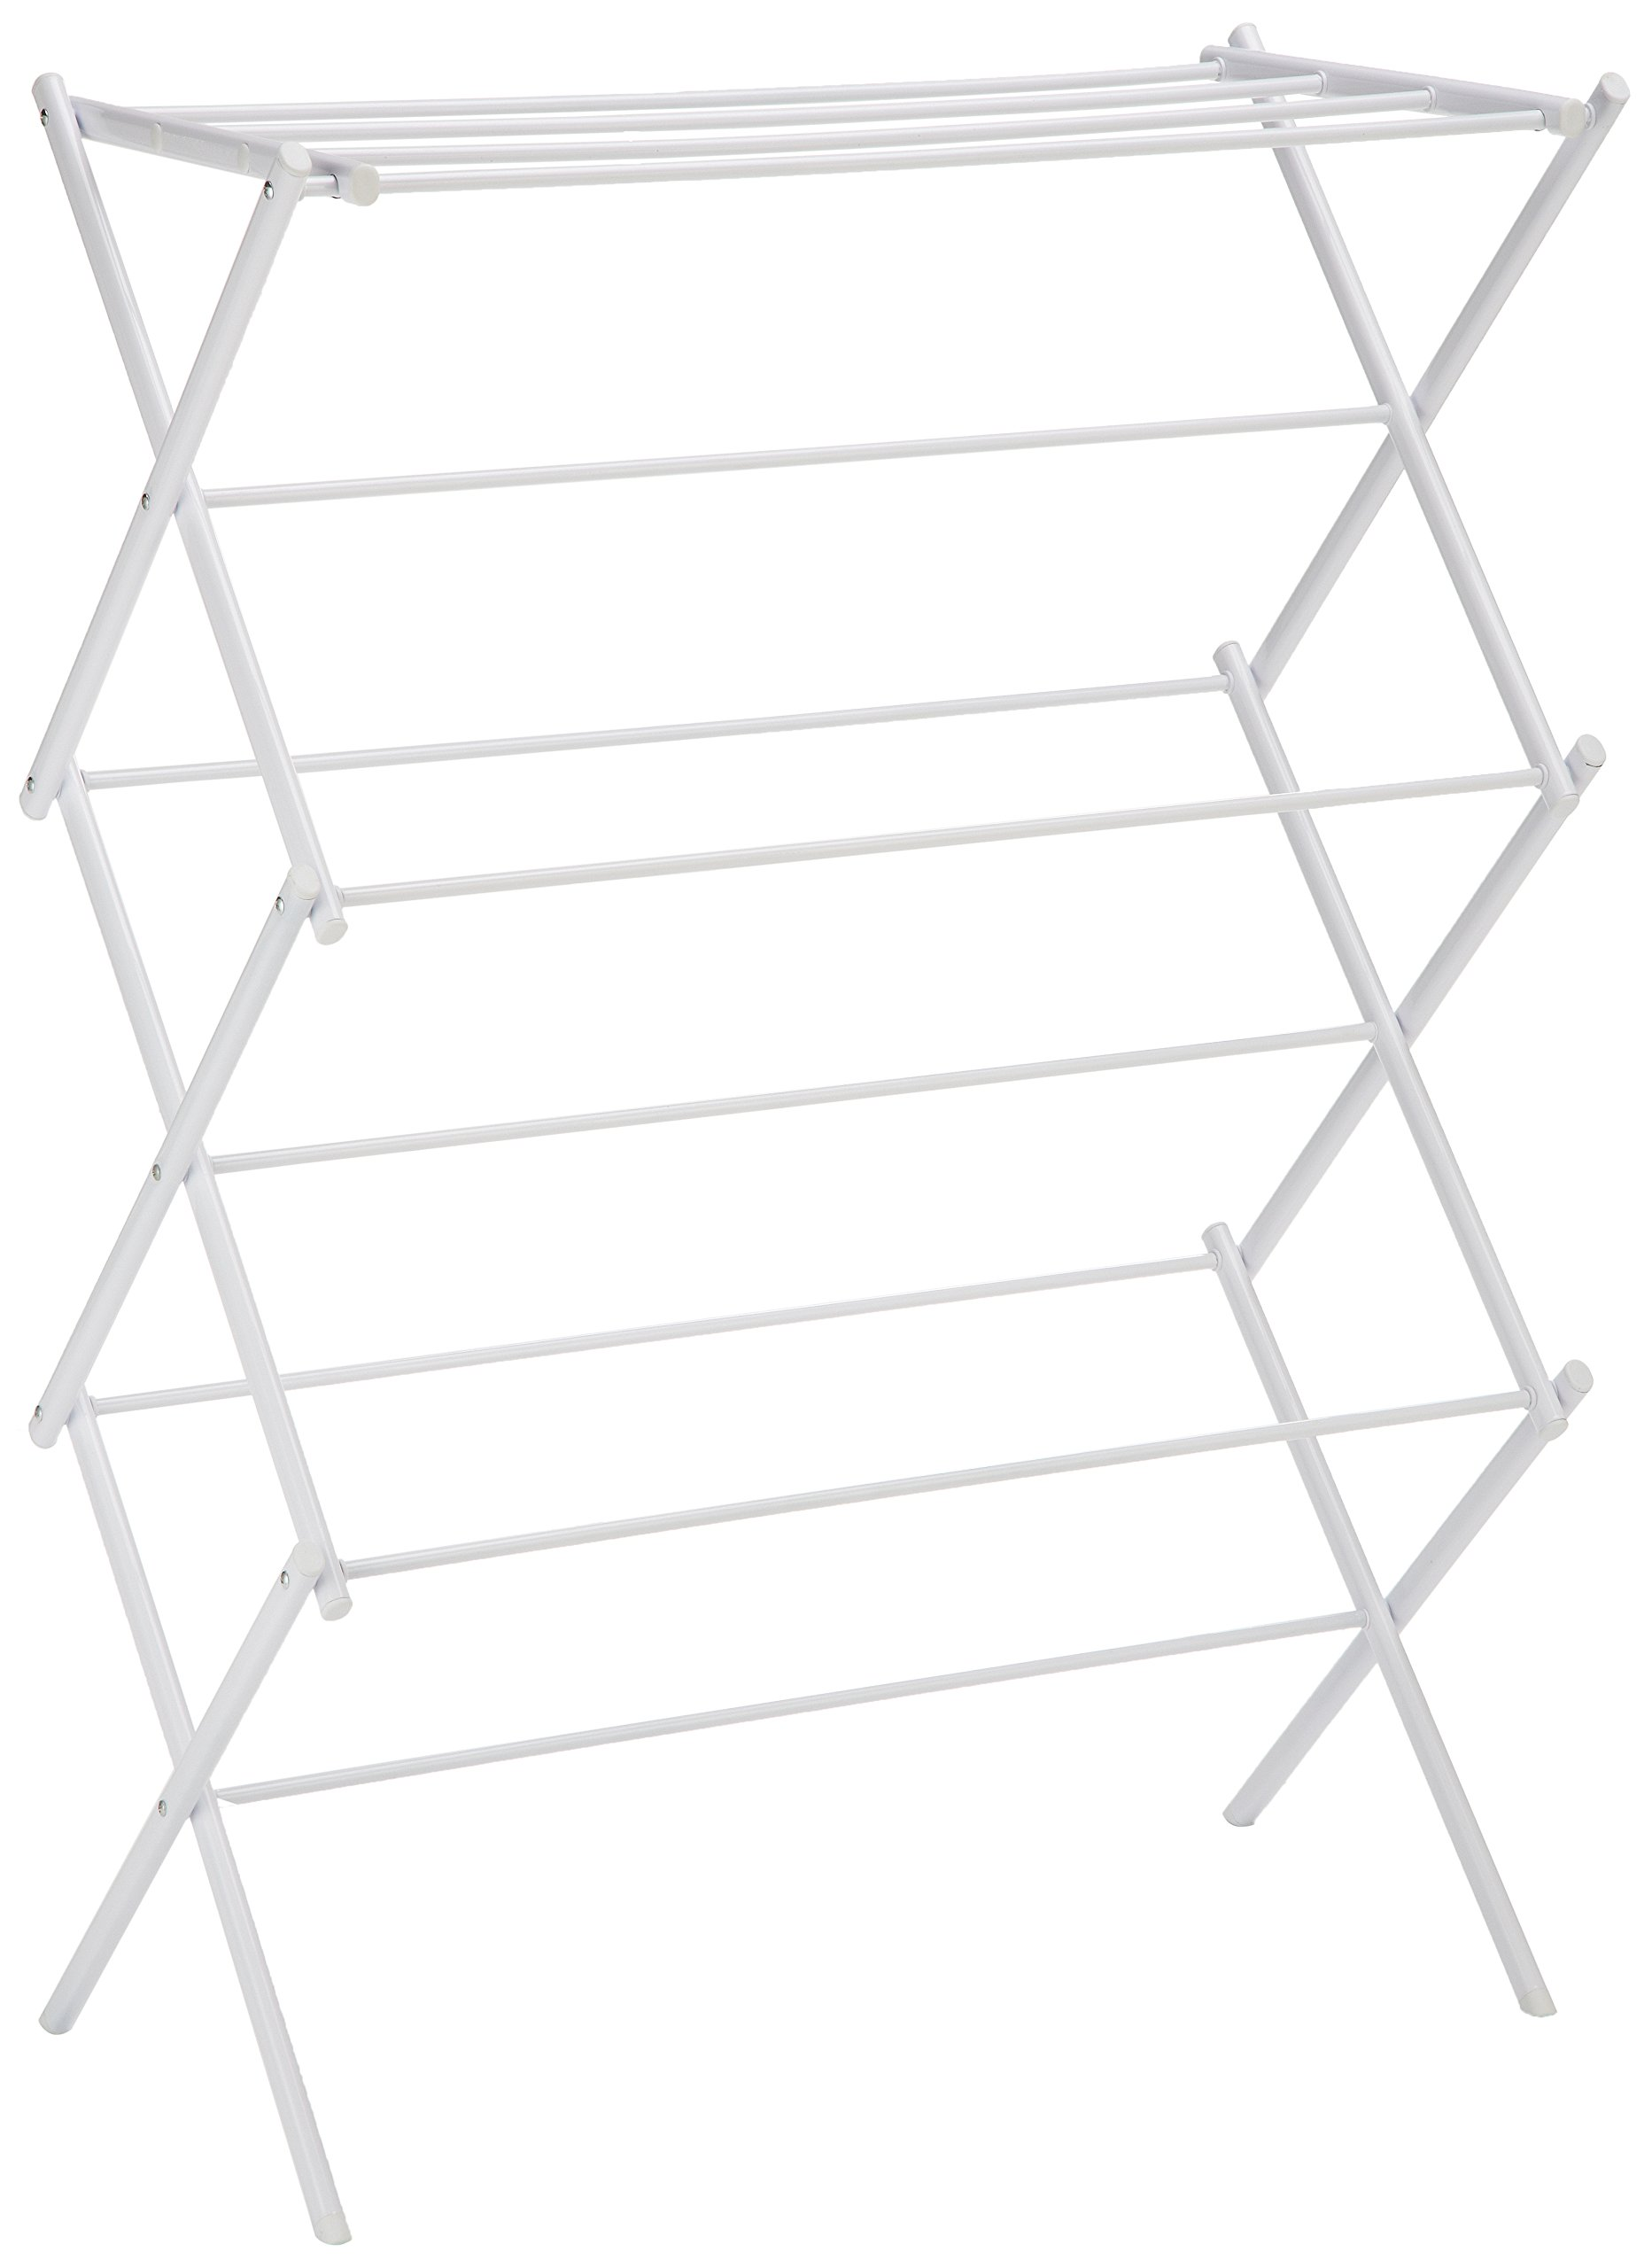 AmazonBasics Foldable Clothes Drying Laundry Rack - White by AmazonBasics